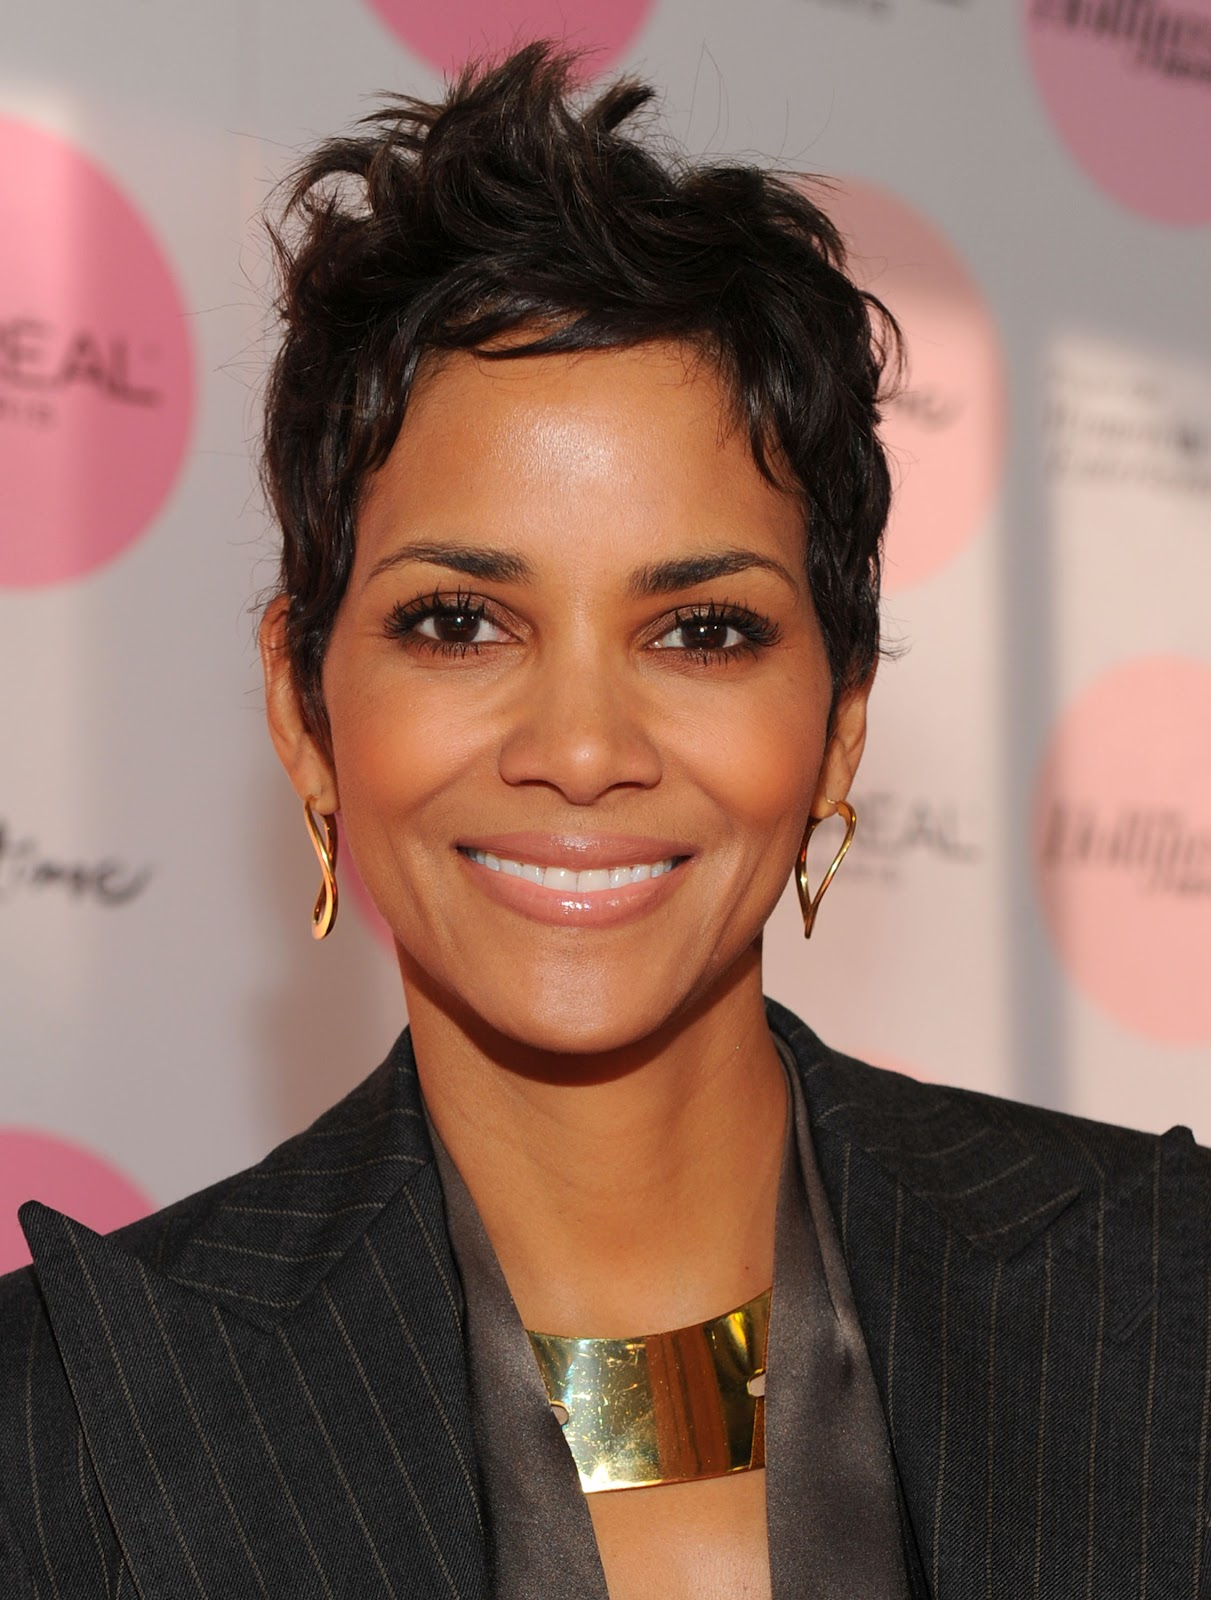 halle berry different hairstyles 2012 trendy hairstyles 2014. Black Bedroom Furniture Sets. Home Design Ideas